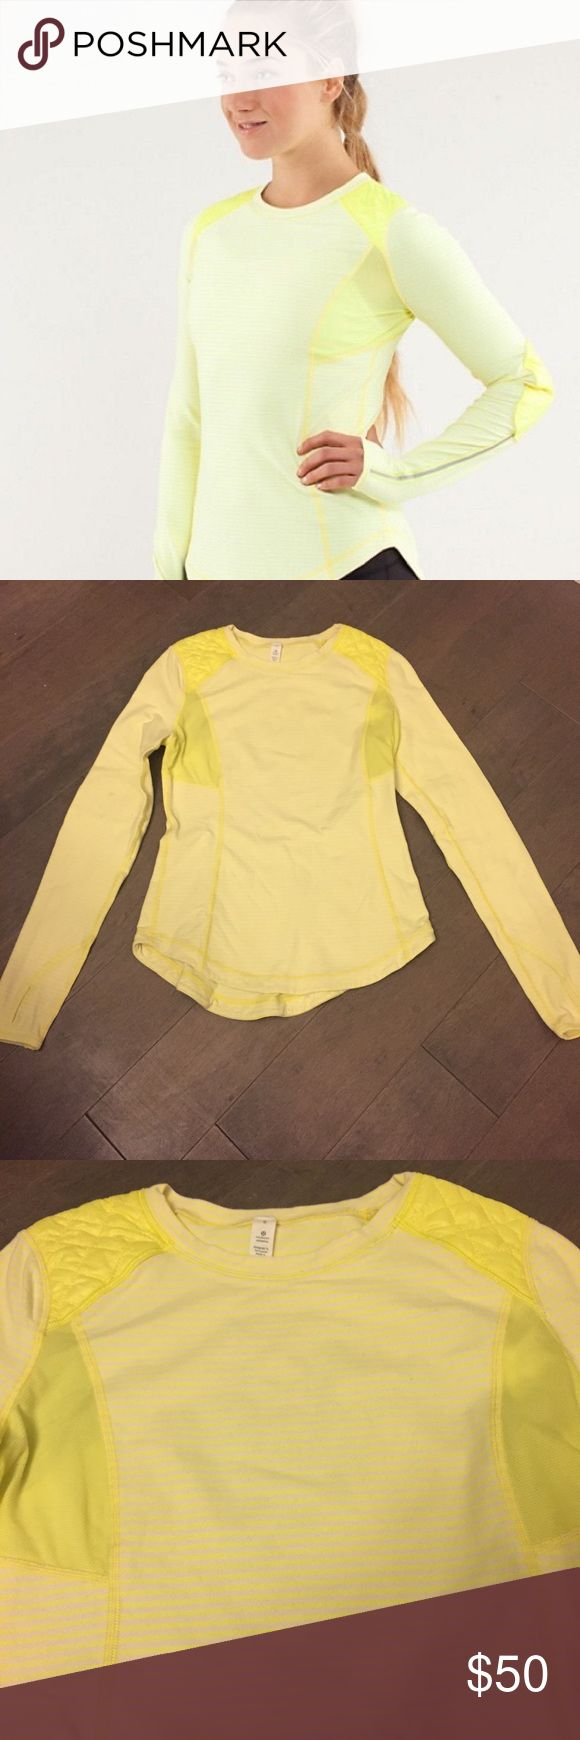 Lululemon Yellow Long Sleeve Top Padded Shoulders Unique and amazing Lululemon yellow long sleeve Workout/yoga top. Nice reflective strips for great visibility and unique shoulder and elbow padding for great wearability. The under arms have lightweight material meant to breath and the main fabric is very thick and stretchy. Great form fitting long sleeve with thumbholes on the sleeves too!! Size 6 in great condition--- small smudge on one sleeve. Should come out with a wash! Other than that…